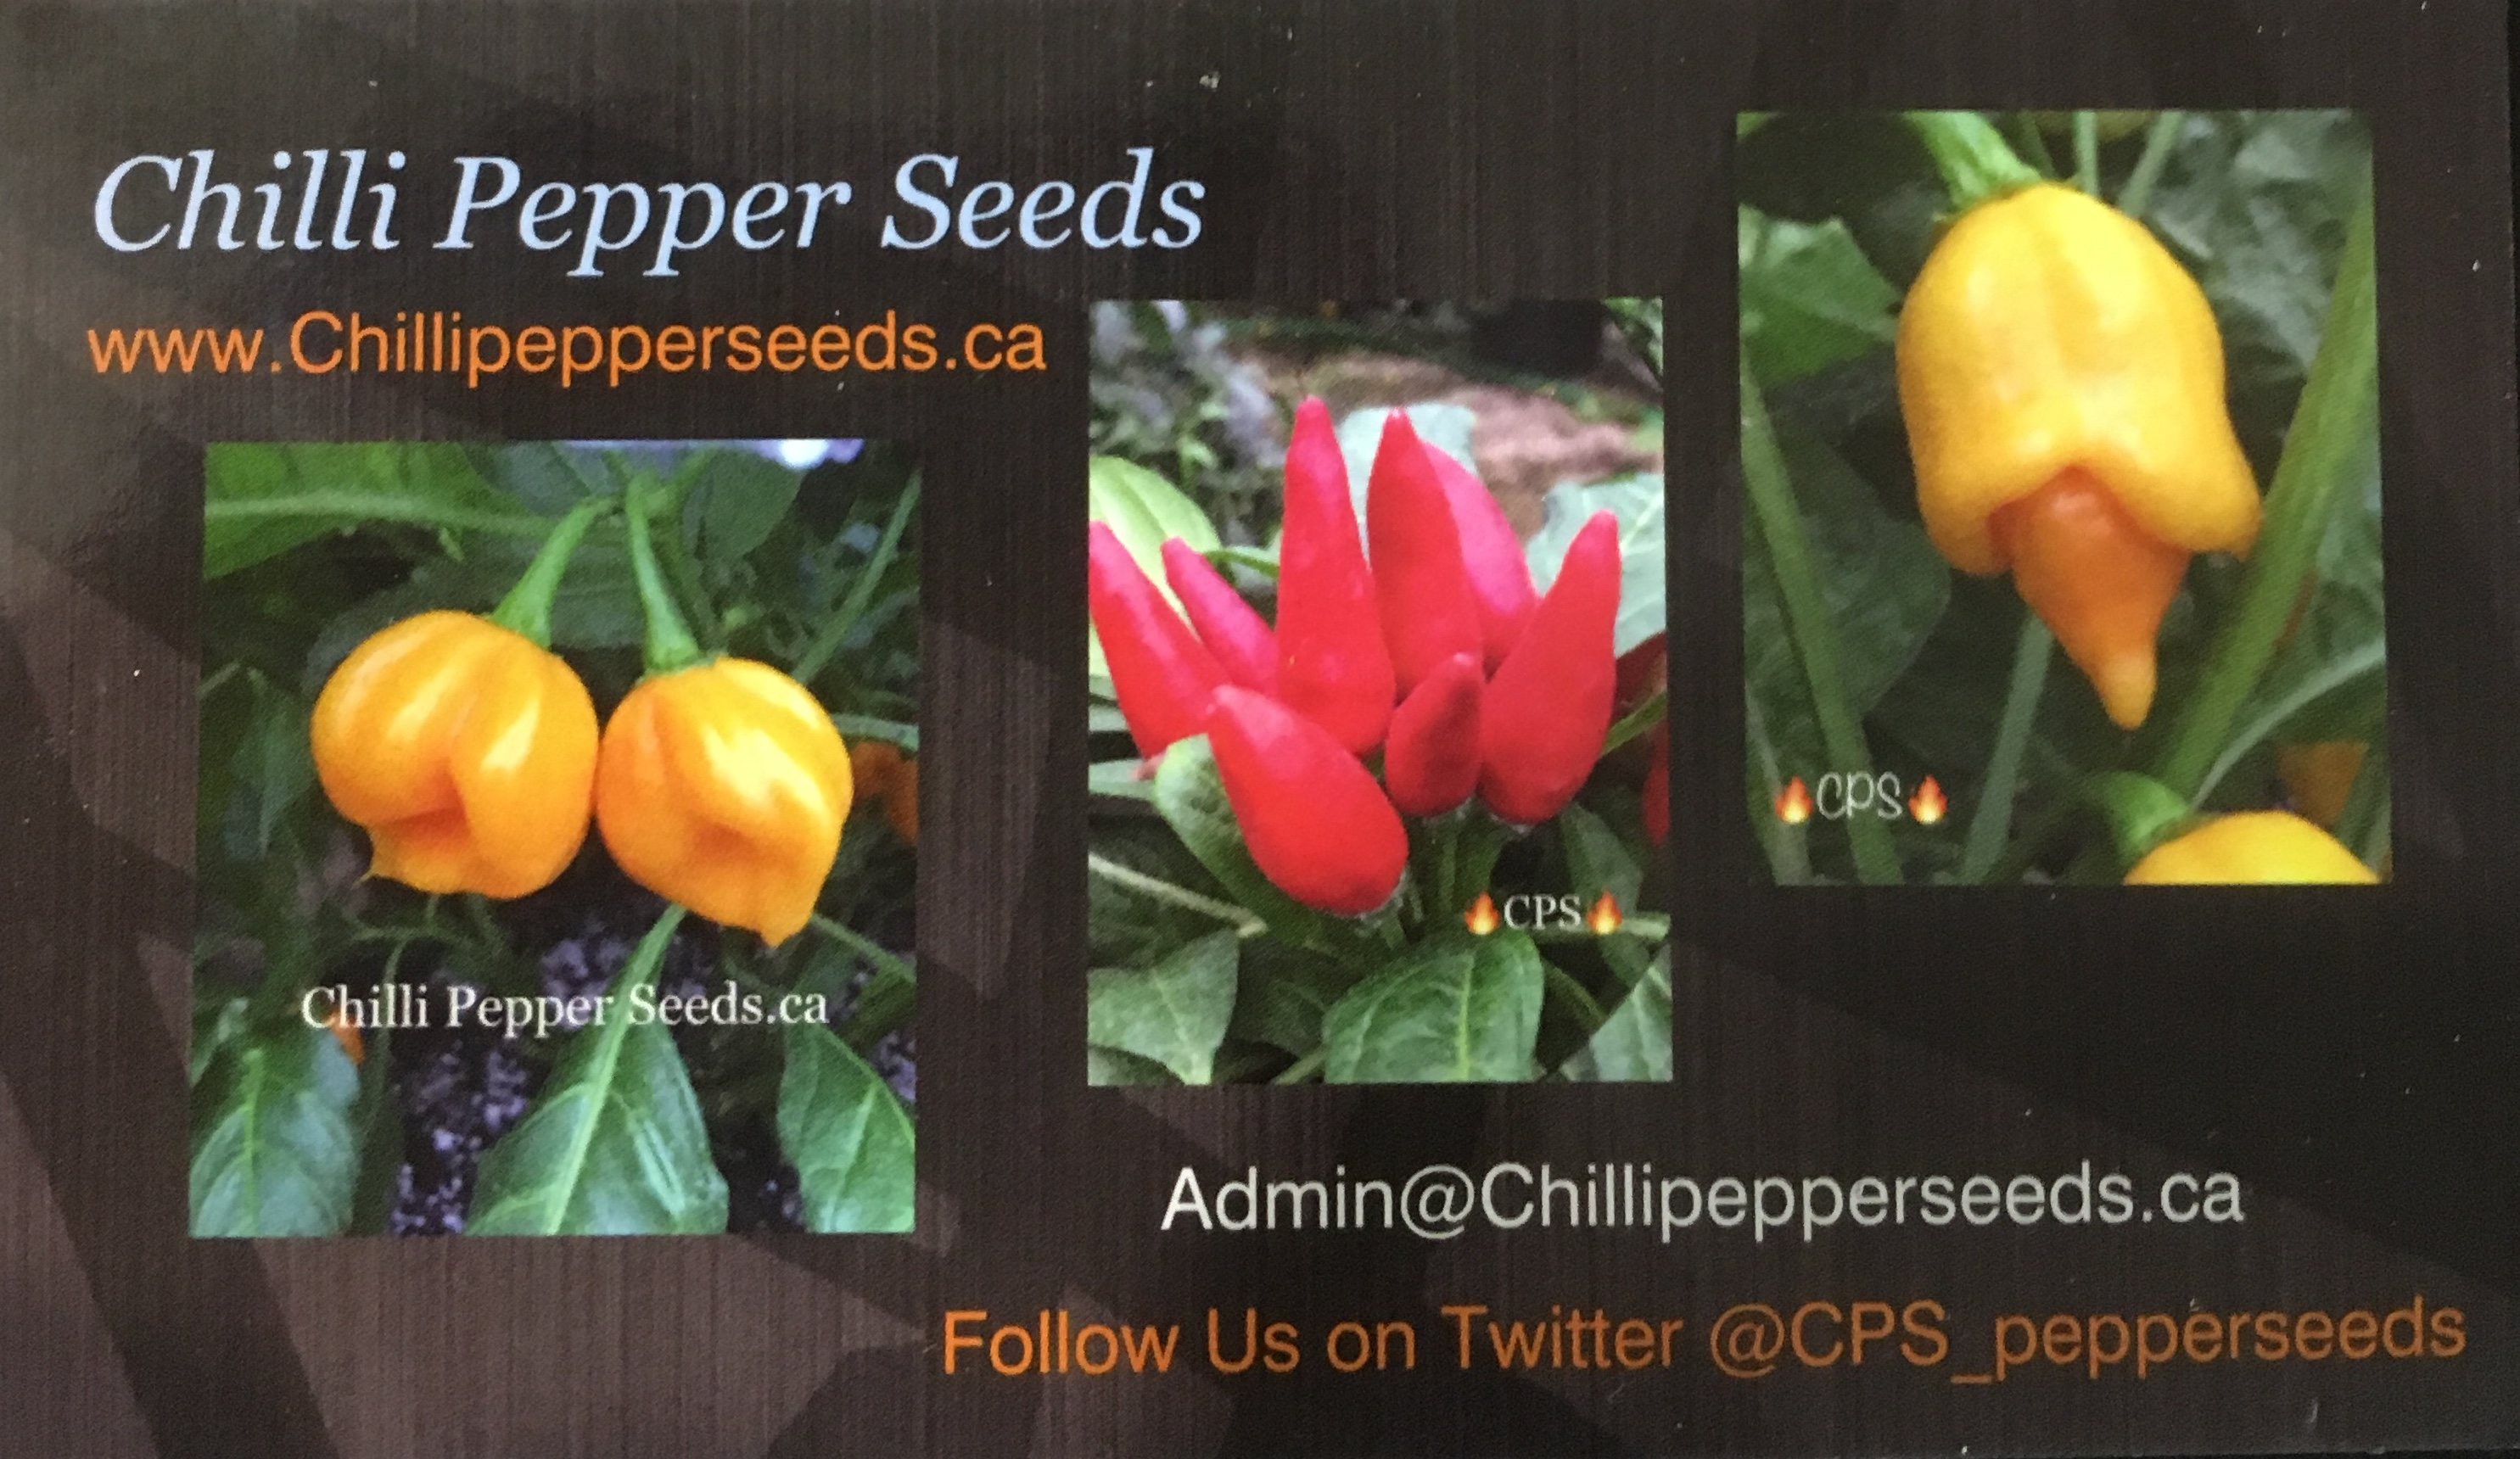 Chilli Pepper Seeds